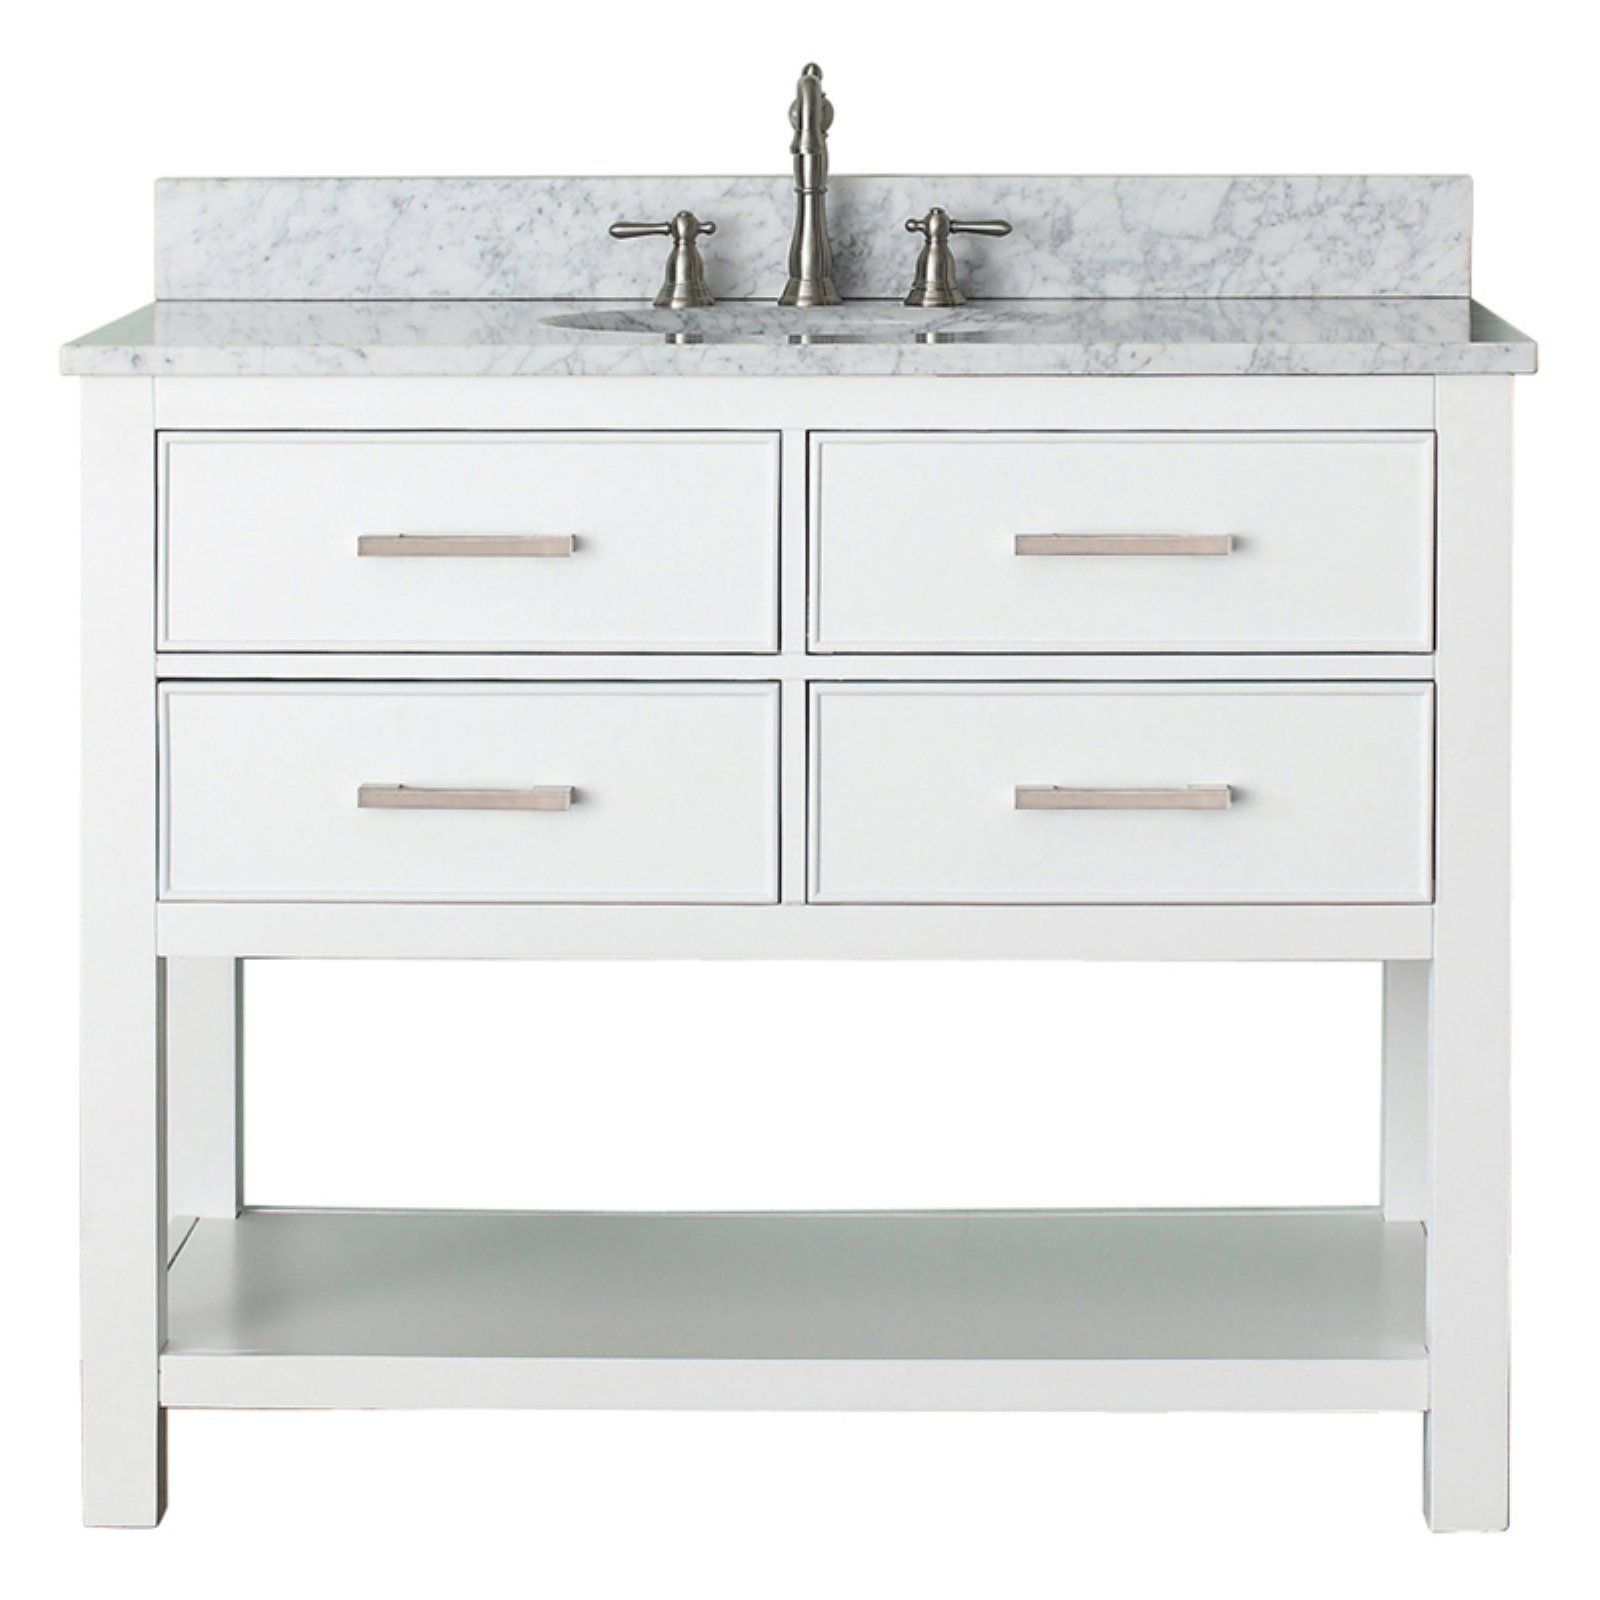 30+ The 42 Inch Bathroom Vanity For Your Informations | 42 ...